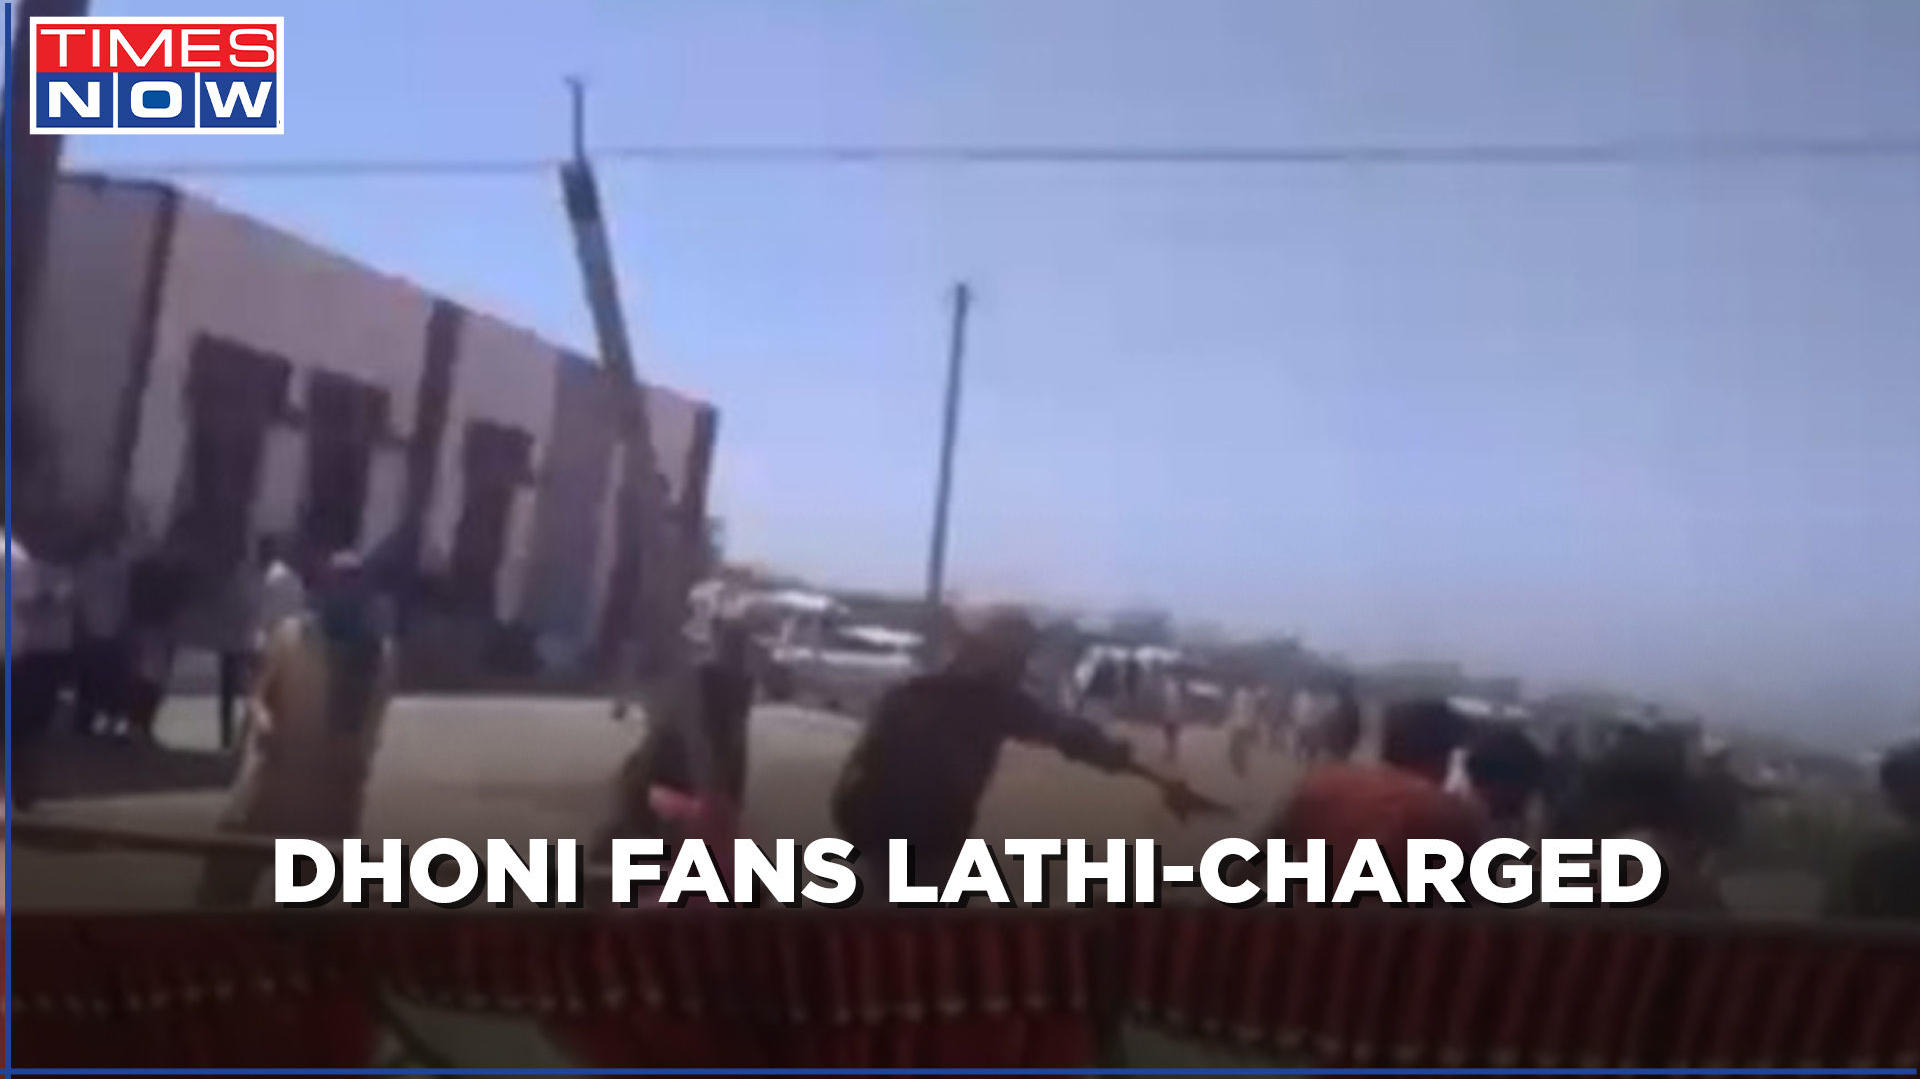 Rajasthan: MS Dhoni inaugurates cricket academy; Cops use force to disperse large gathering - Yahoo India News